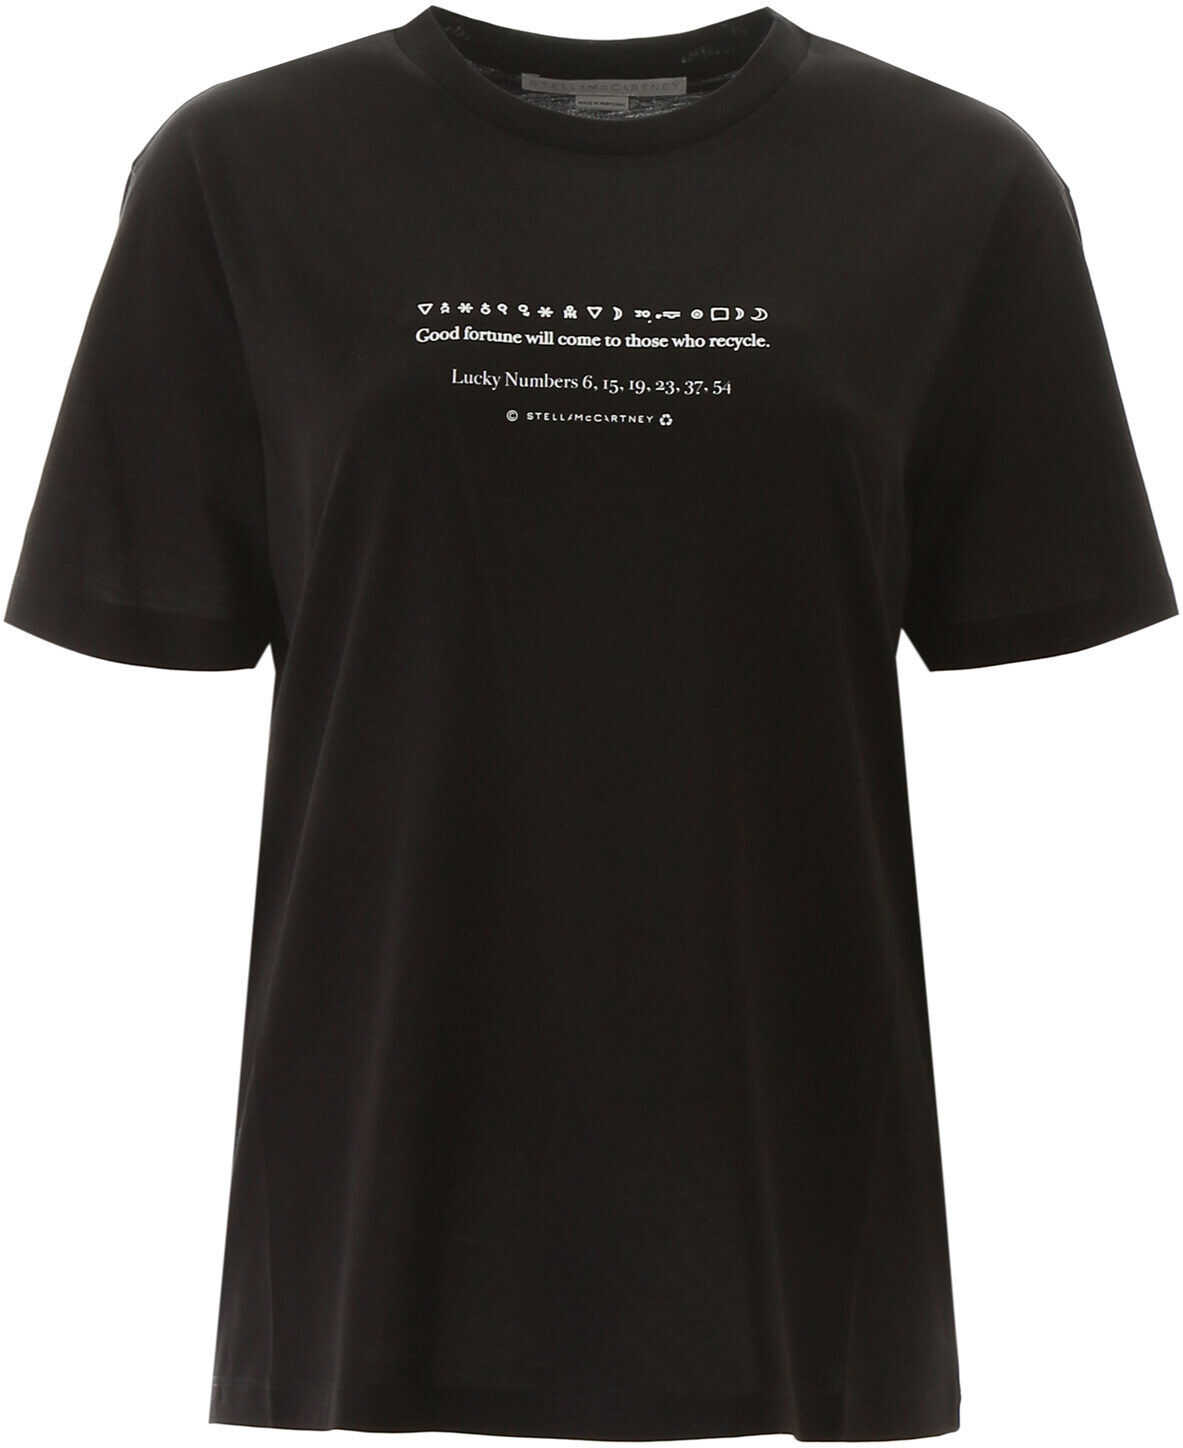 adidas by Stella McCartney Lucky Numbers T-Shirt BLACK